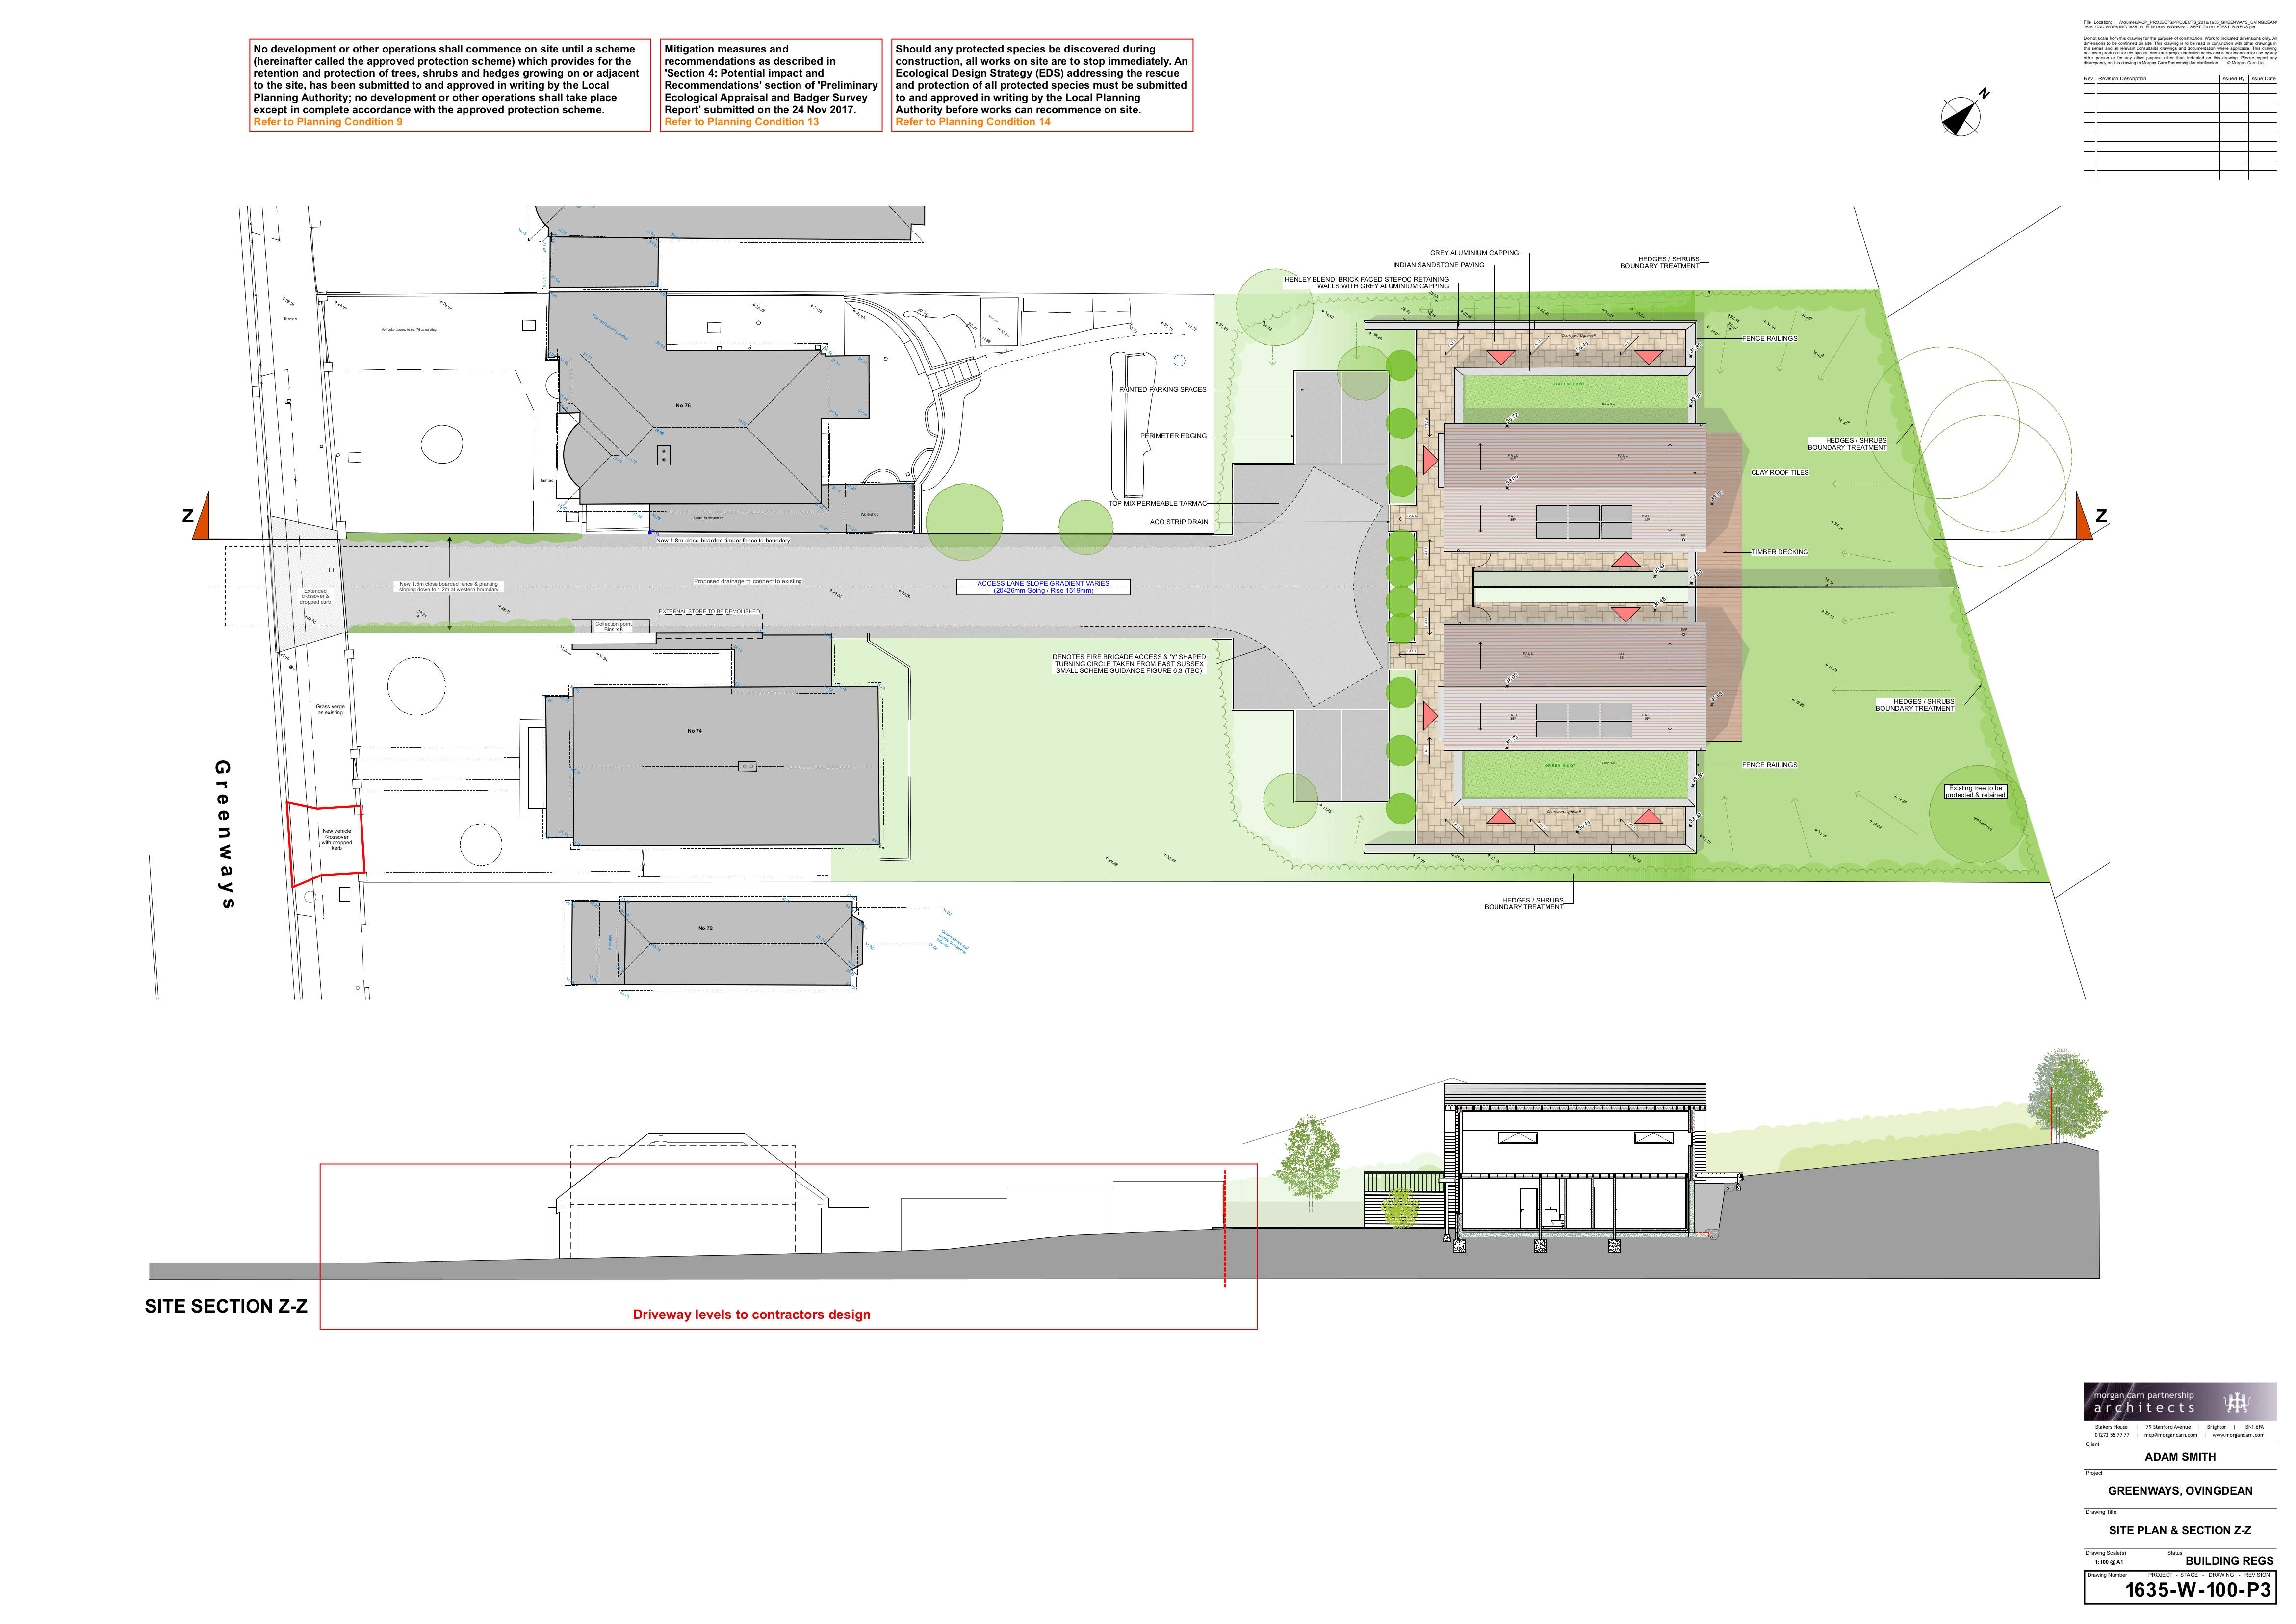 An image of From plans to reality, follow our new build project here goes here.